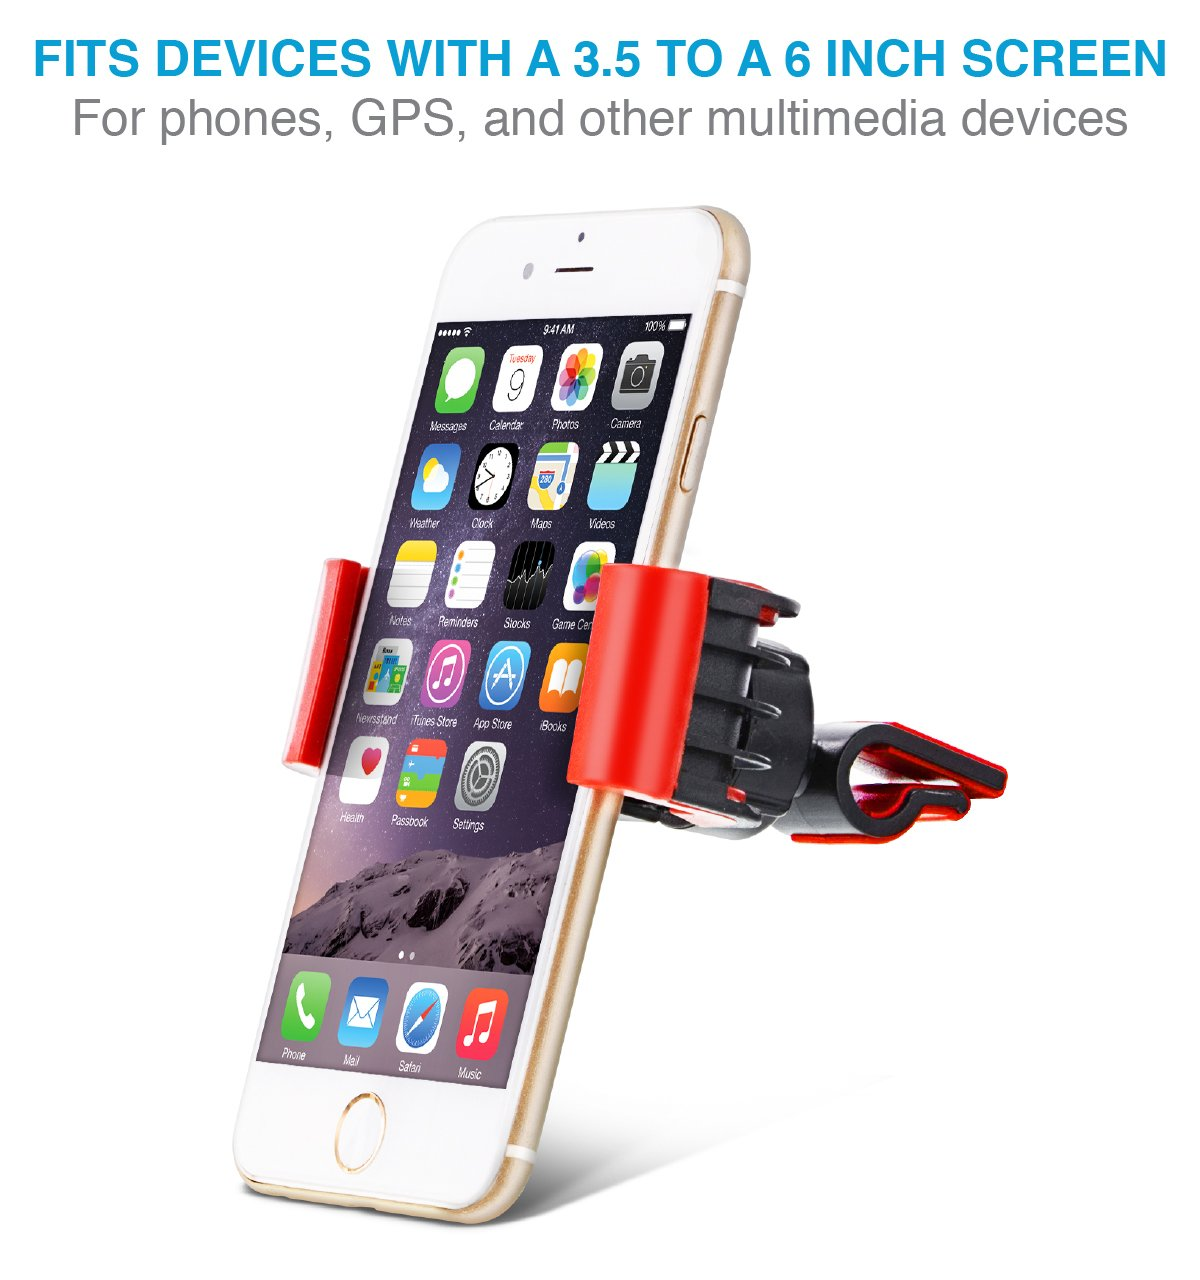 HTC and All Devices up to 6 Aduro U-Grip Swivel Universal Smartphone Air Vent Car Mount Holder with 360/° Rotating Swivel Head Compatible Apple iPhone Gray UNI-SPH01-SVM-12 HTC and All Devices up to 6 Gray Samsung Galaxy